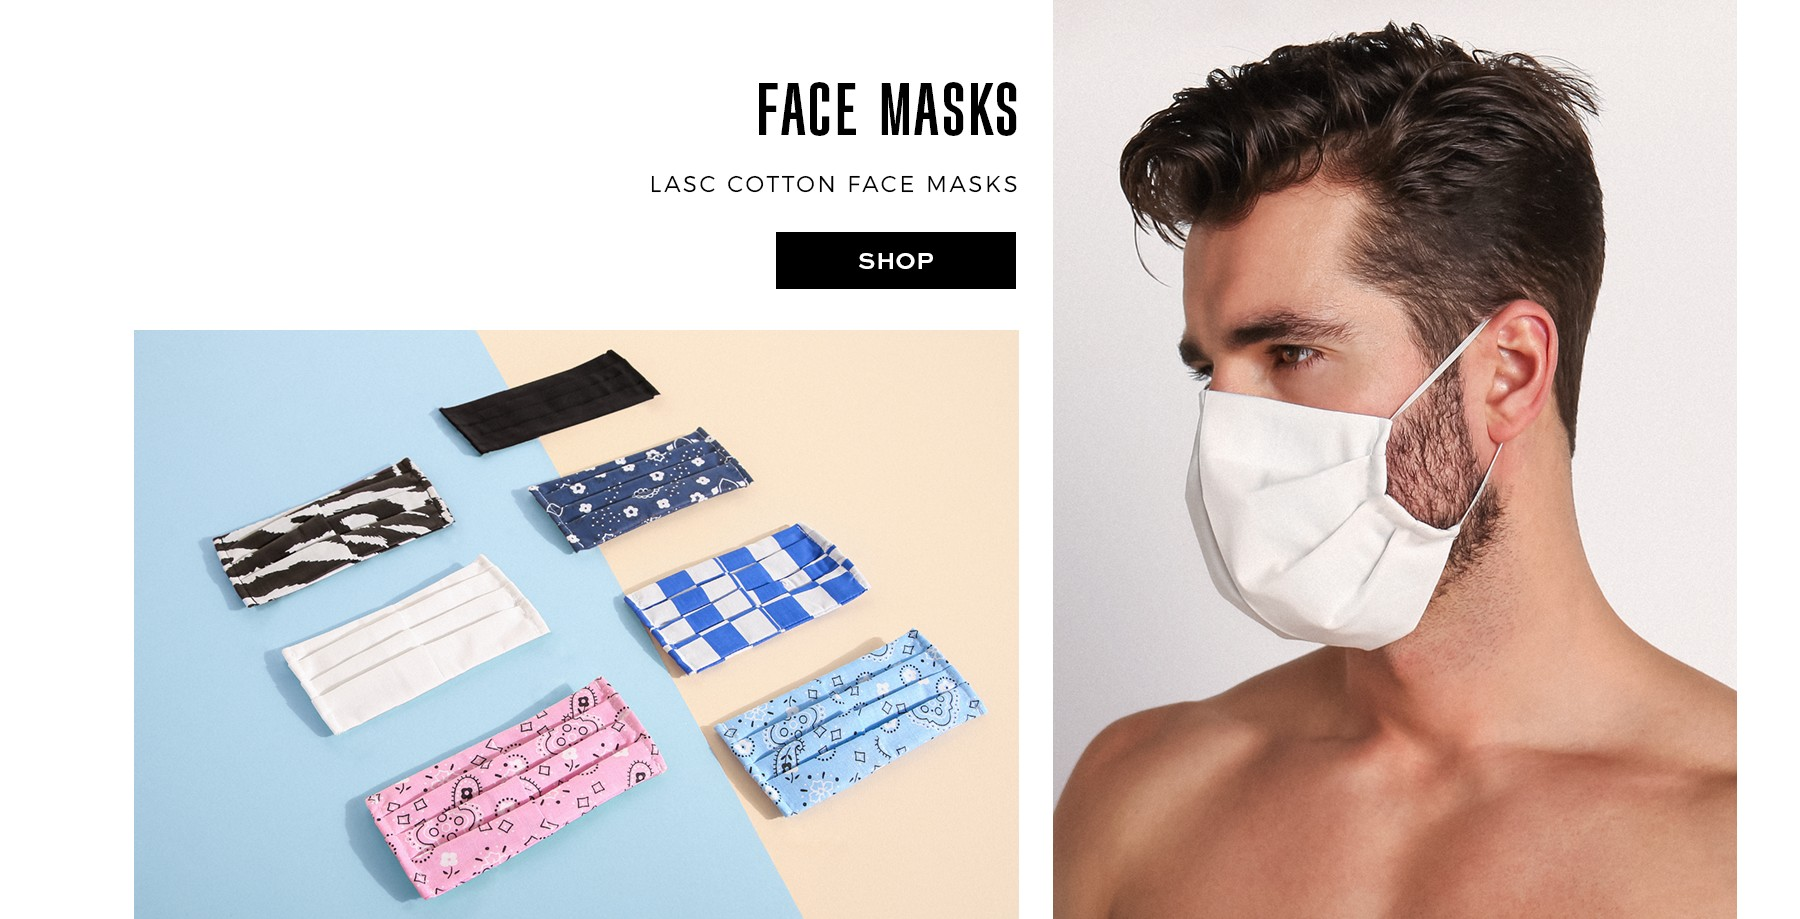 Cotton facemasks in multiple colors and prints